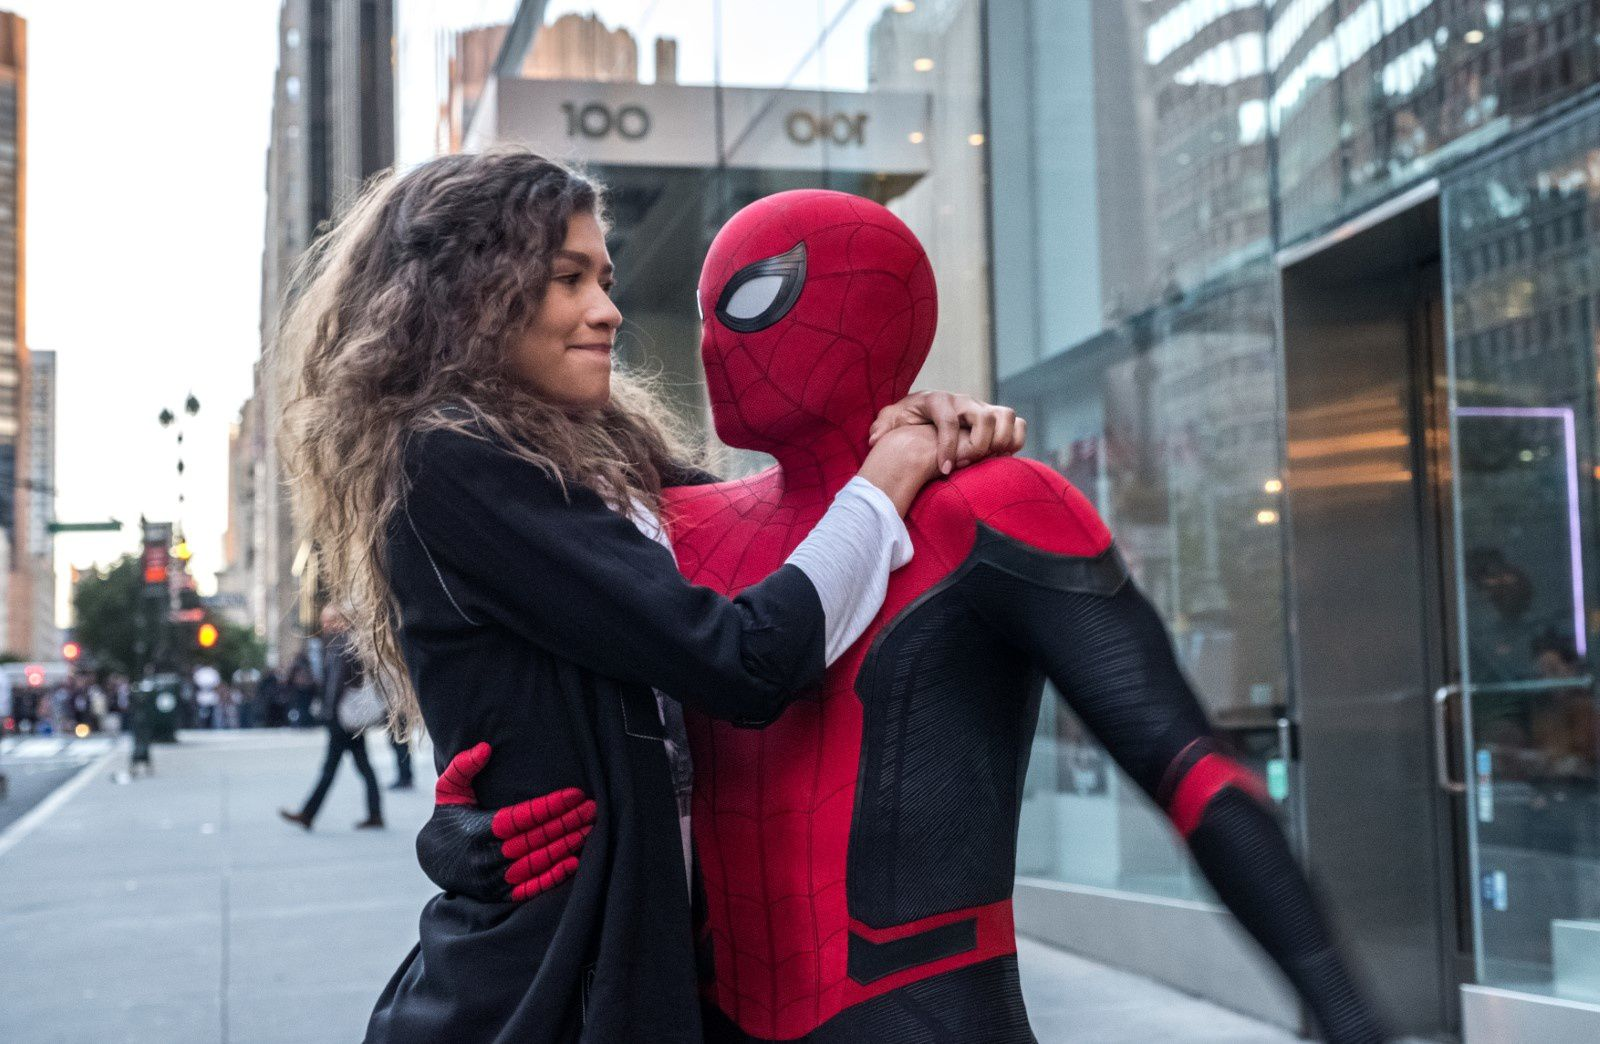 Spider-Man : Far From Home (BANDE-ANNONCE) avec Tom Holland, Zendaya, Marisa Tomei, Jake Gyllenhaal - Le 3 juillet 2019 au cinéma